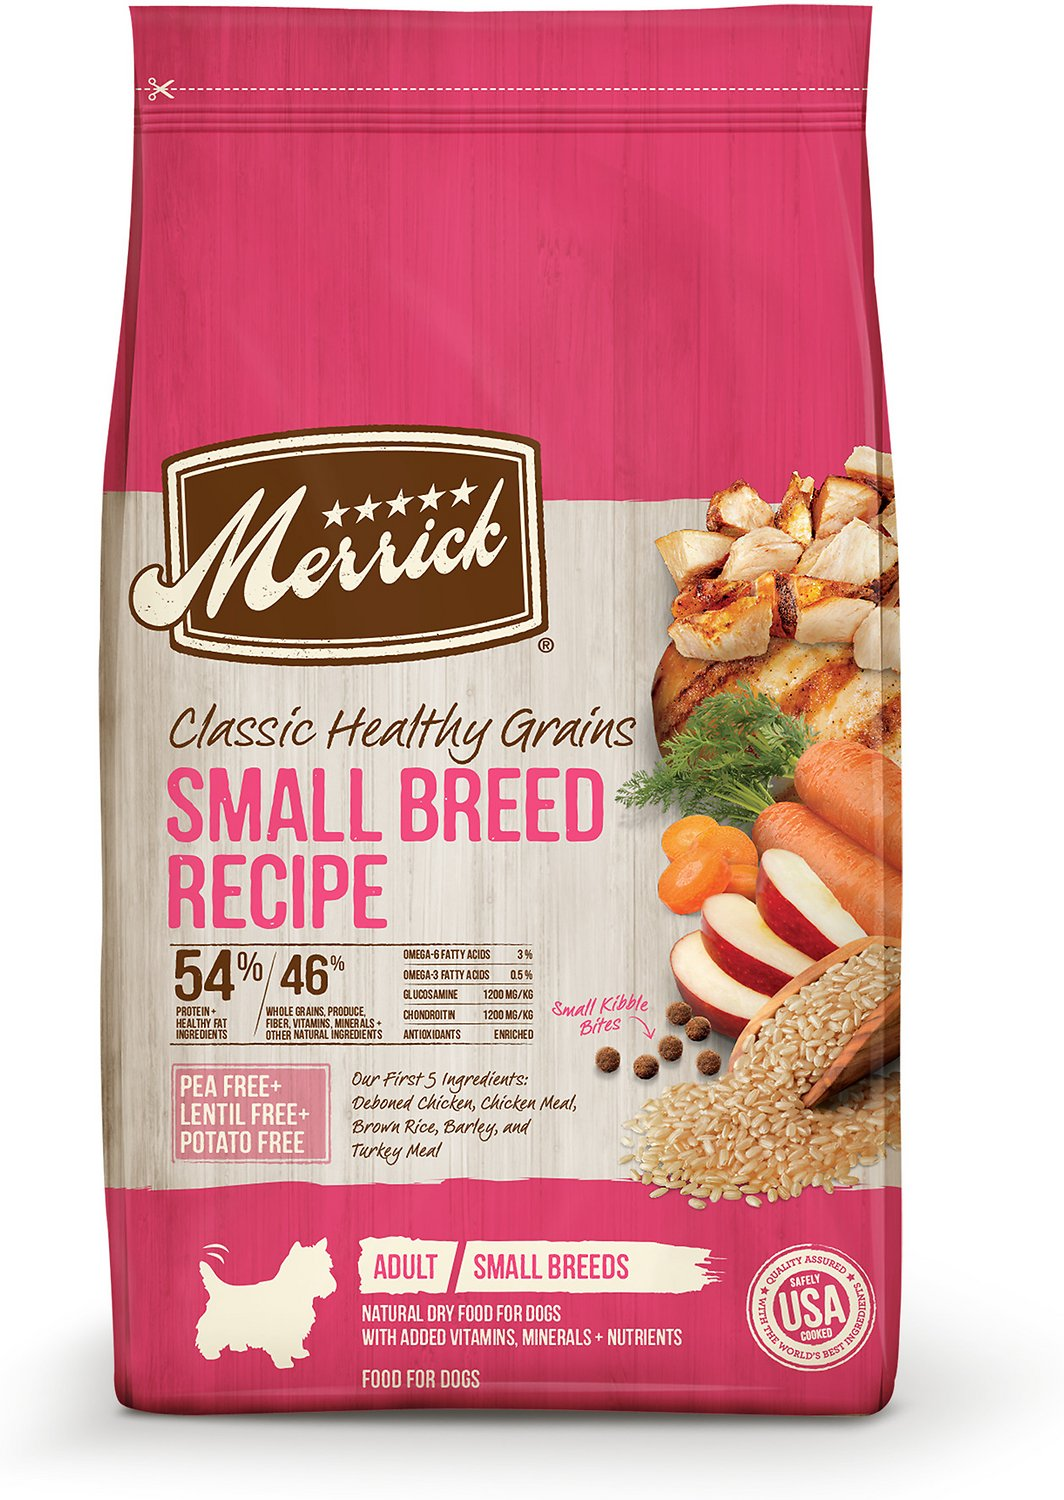 Merrick classic small breed recipe adult dry dog food 4 lb bag merrick classic small breed recipe adult dry dog food 4 lb bag chewy forumfinder Image collections